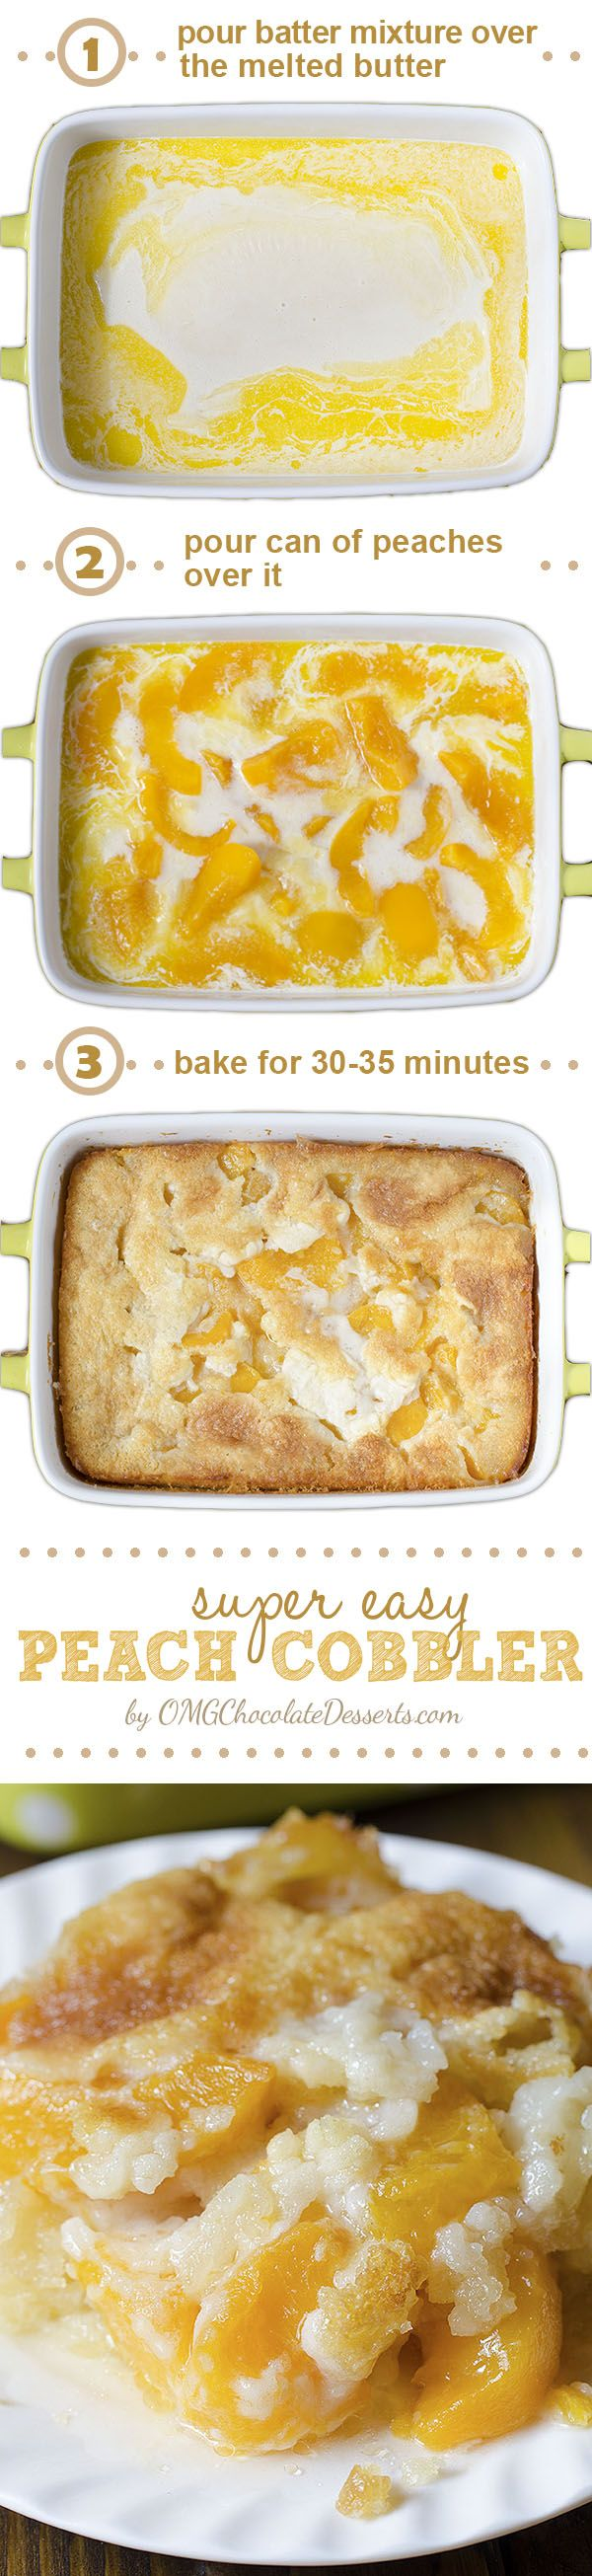 There are three reasons why this fantastic Peach Cobbler can become one of your favorite recipes – it's super tasty, super simple and super economic. #peach #cobbler #recipe